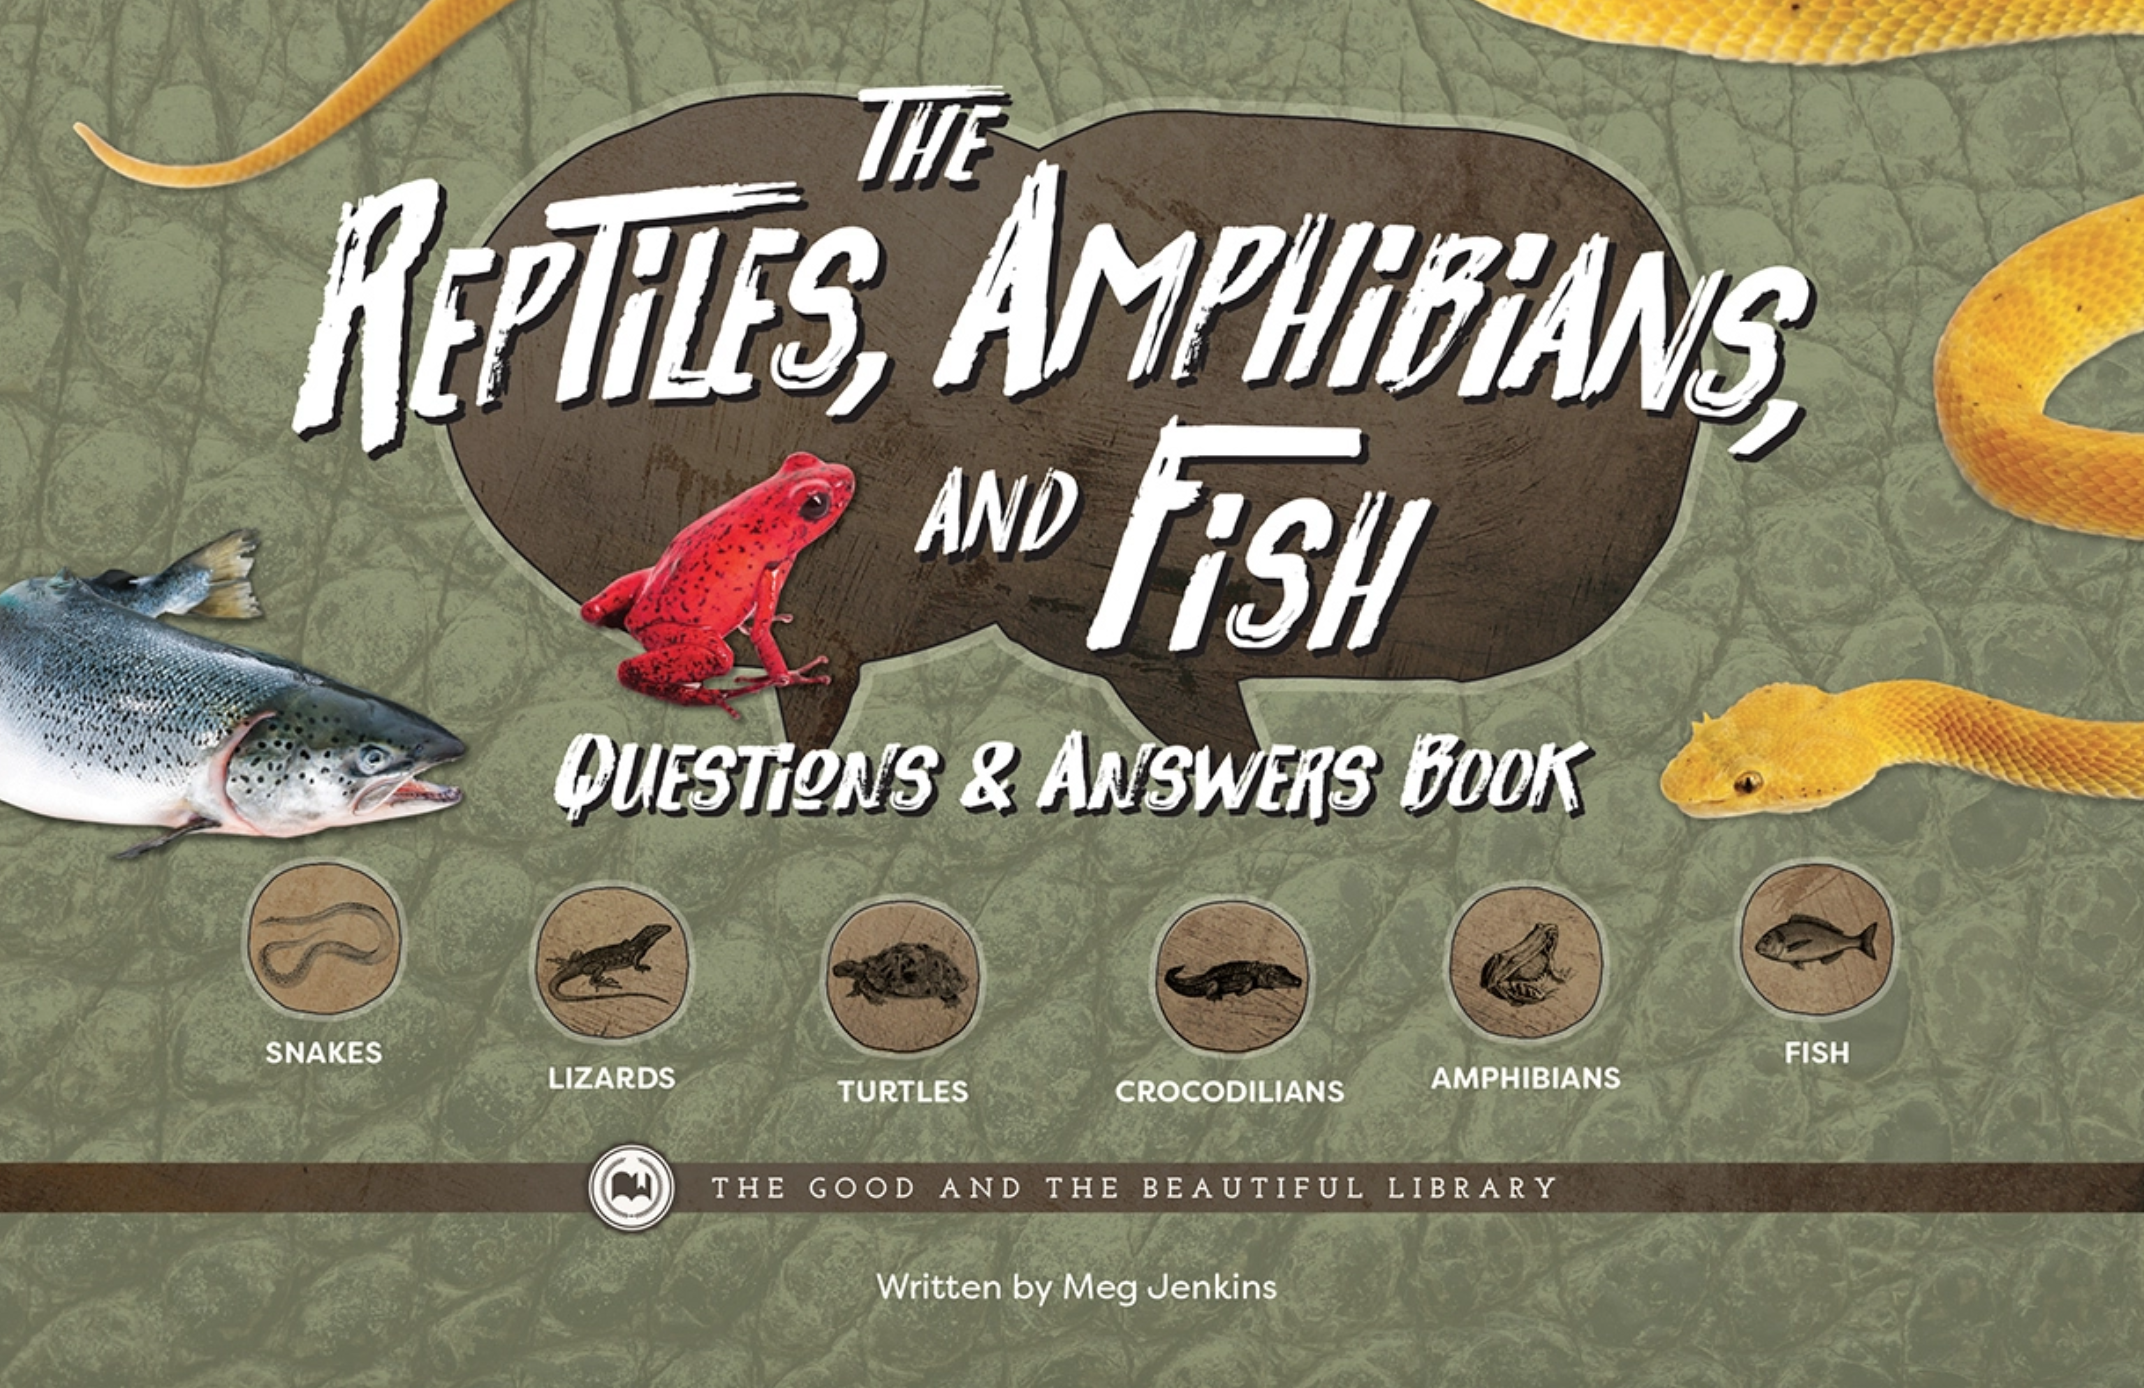 The Reptiles, Amphibians, and Fish Questions & Answers Book